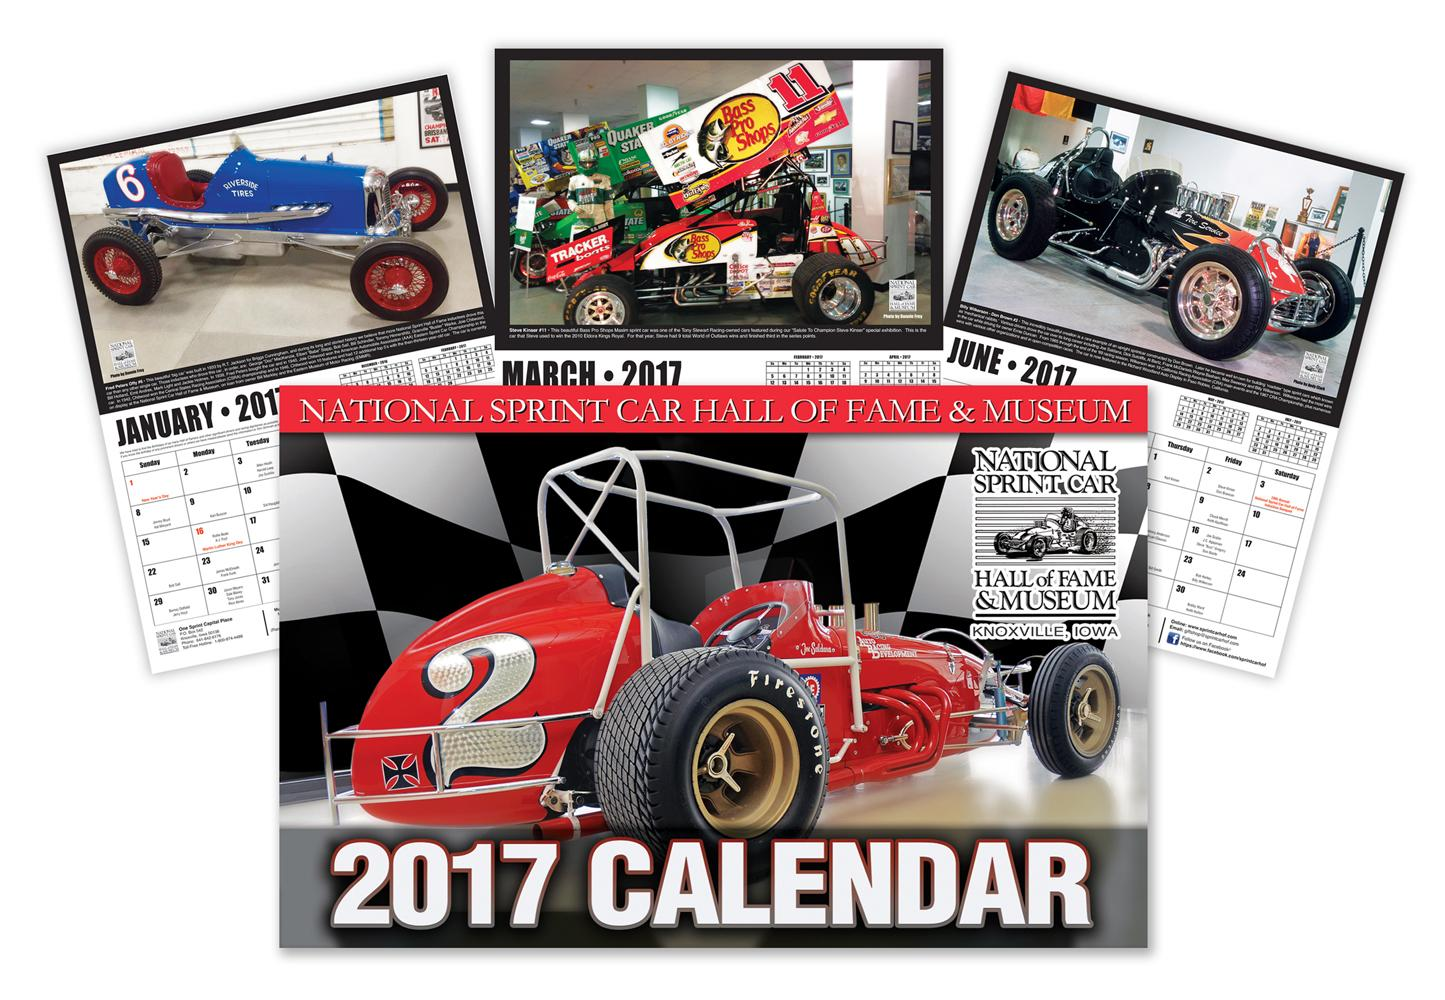 2017 National Sprint Car Hall of Fame & Museum Calendar